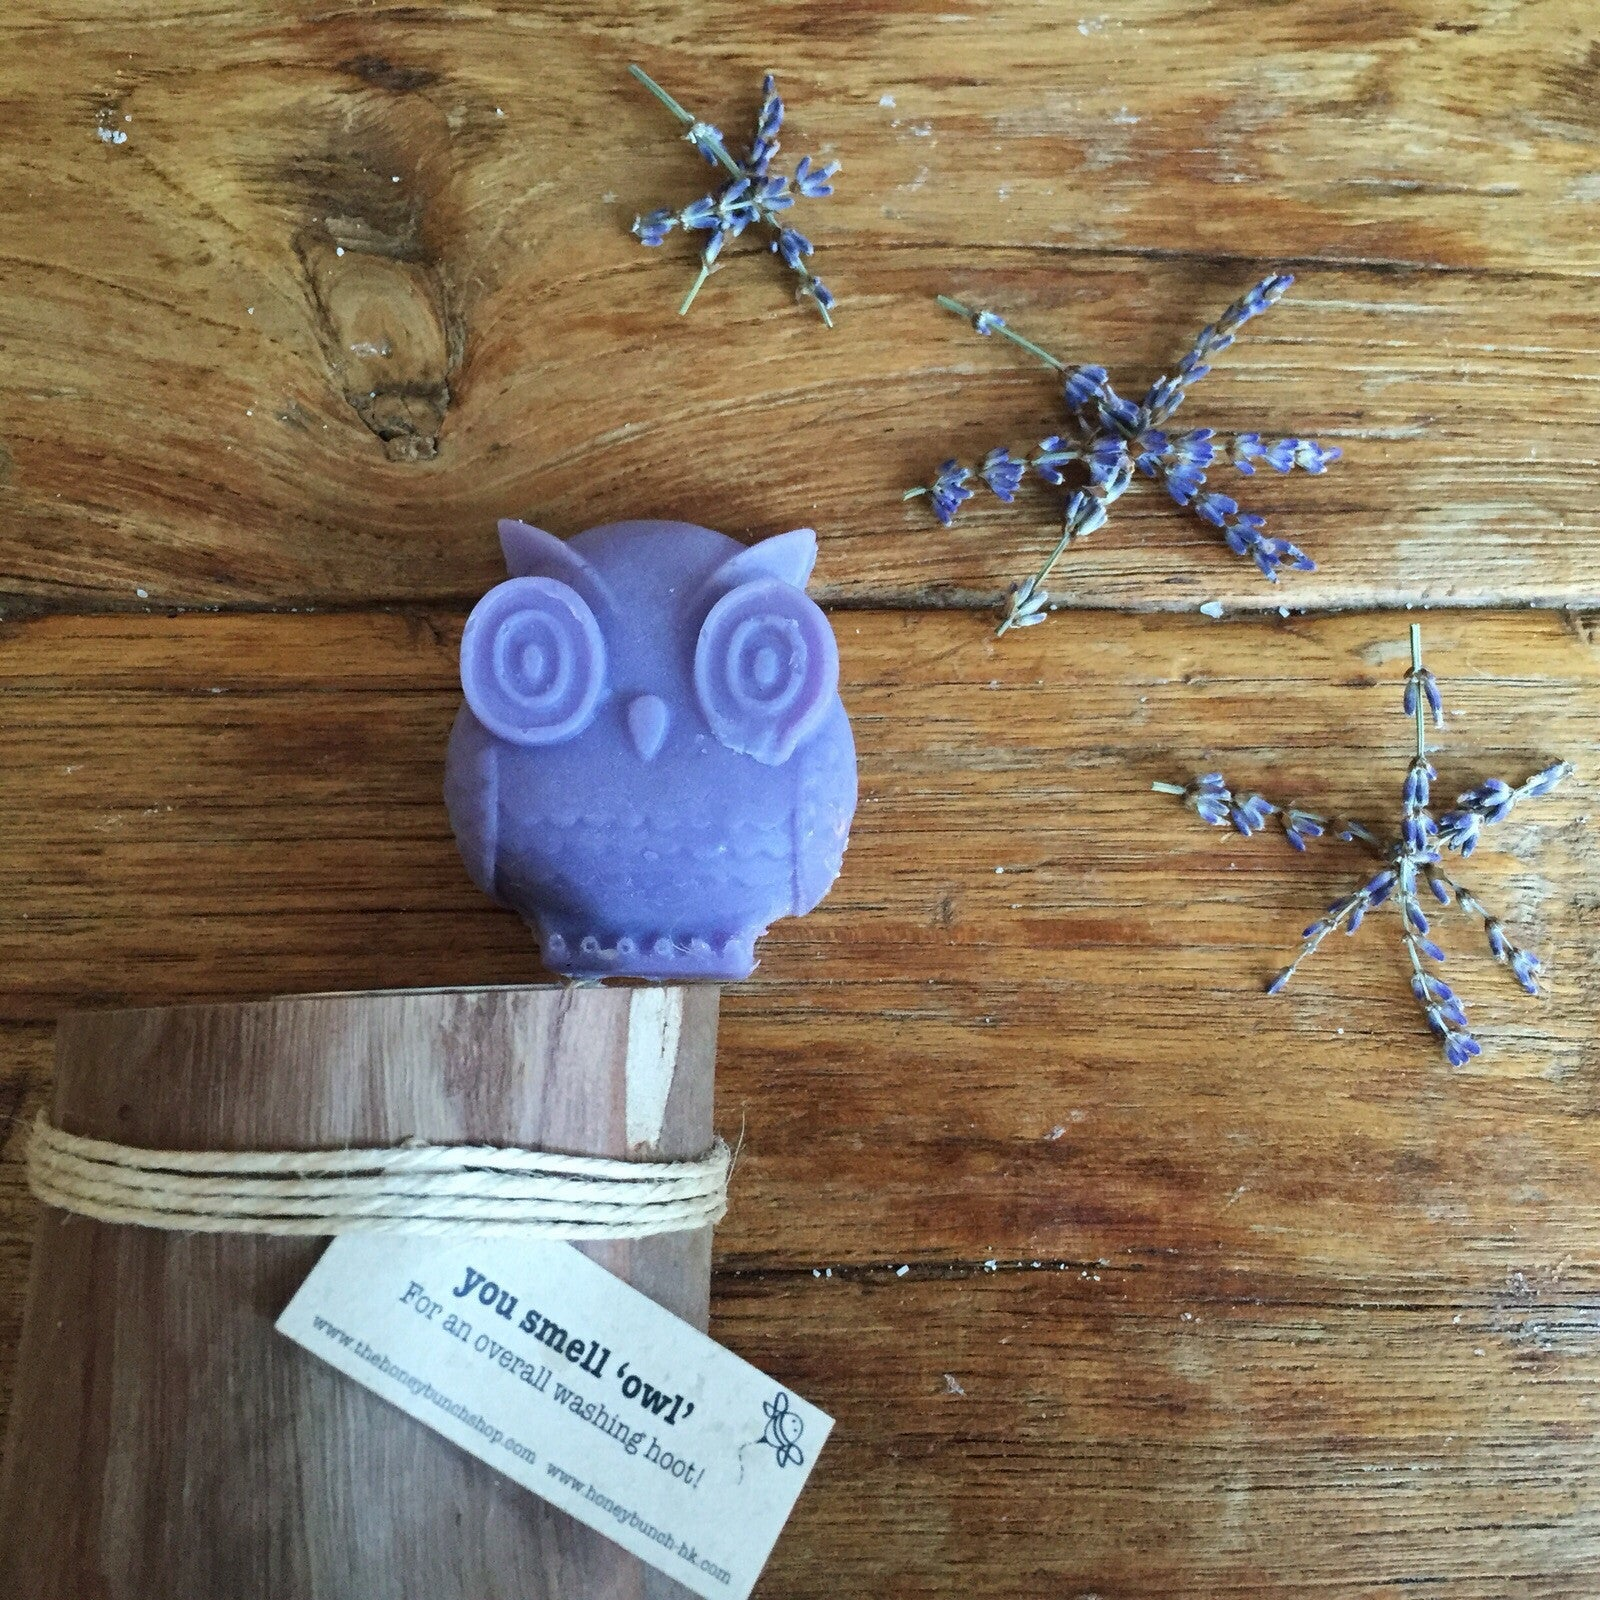 relax lavender 'you smell owl' soap ...